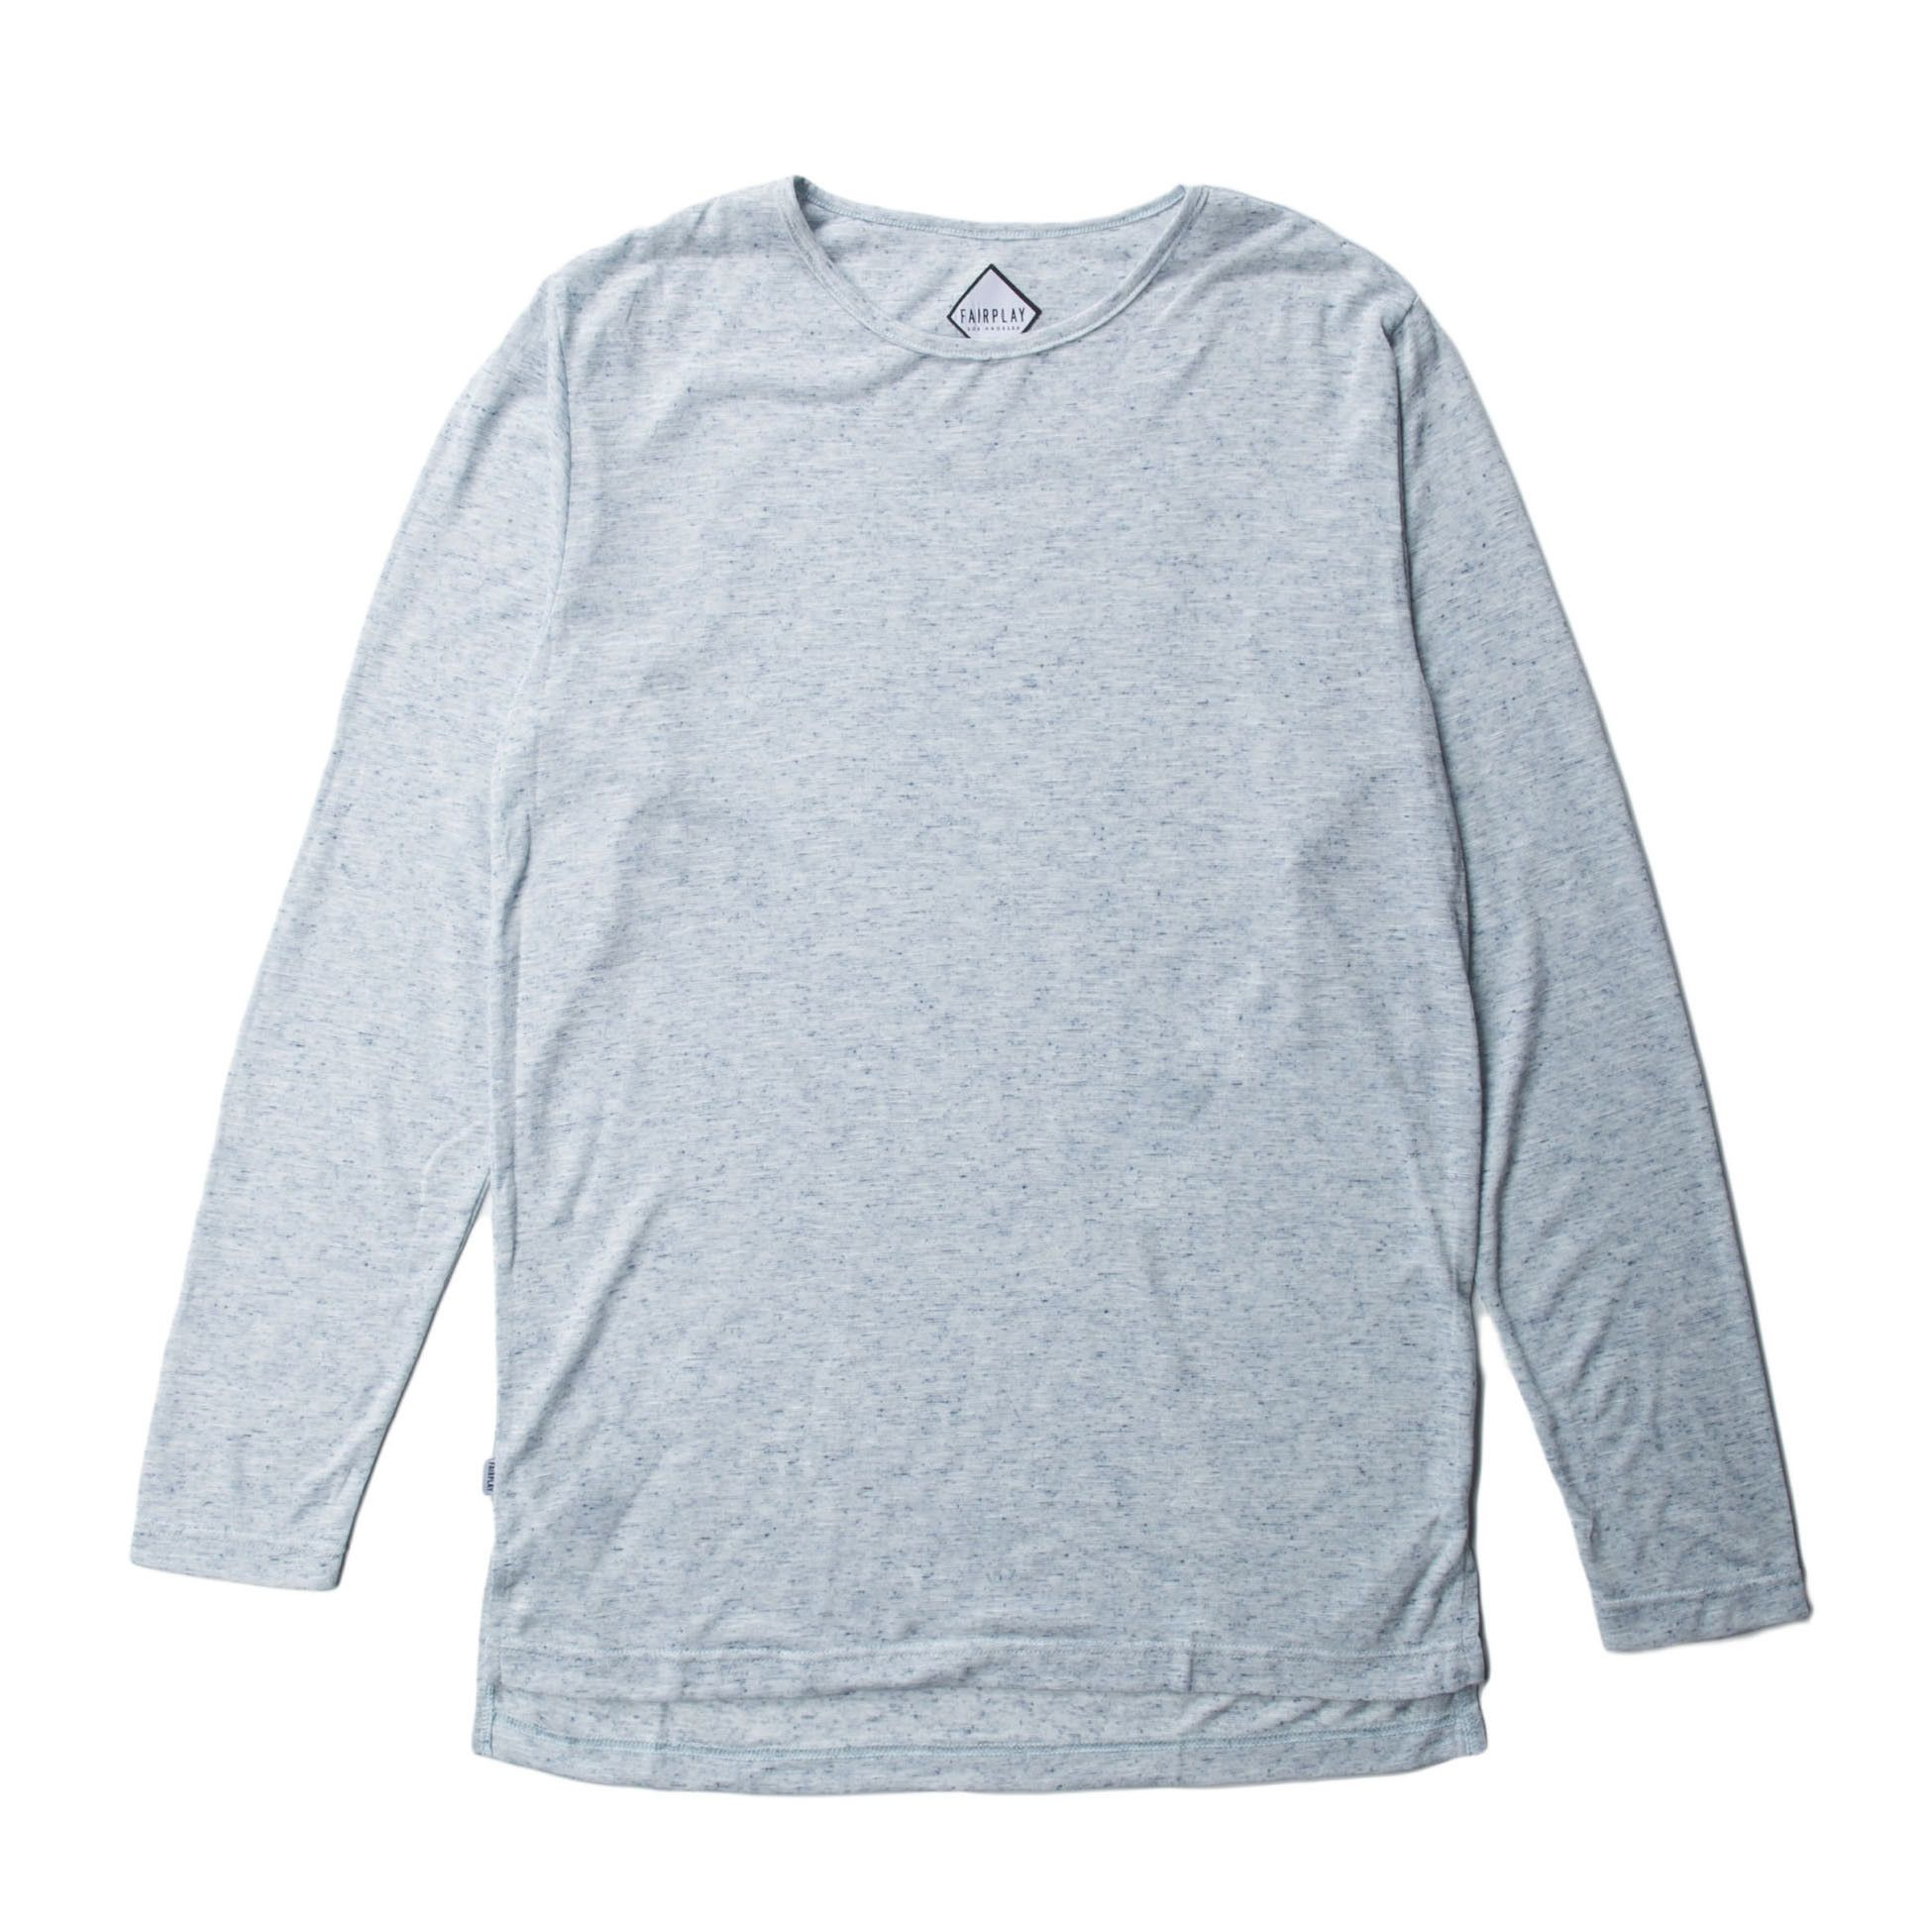 FAIRPLAY ALBION L/S CREW SHIRT - $60.00 CAD